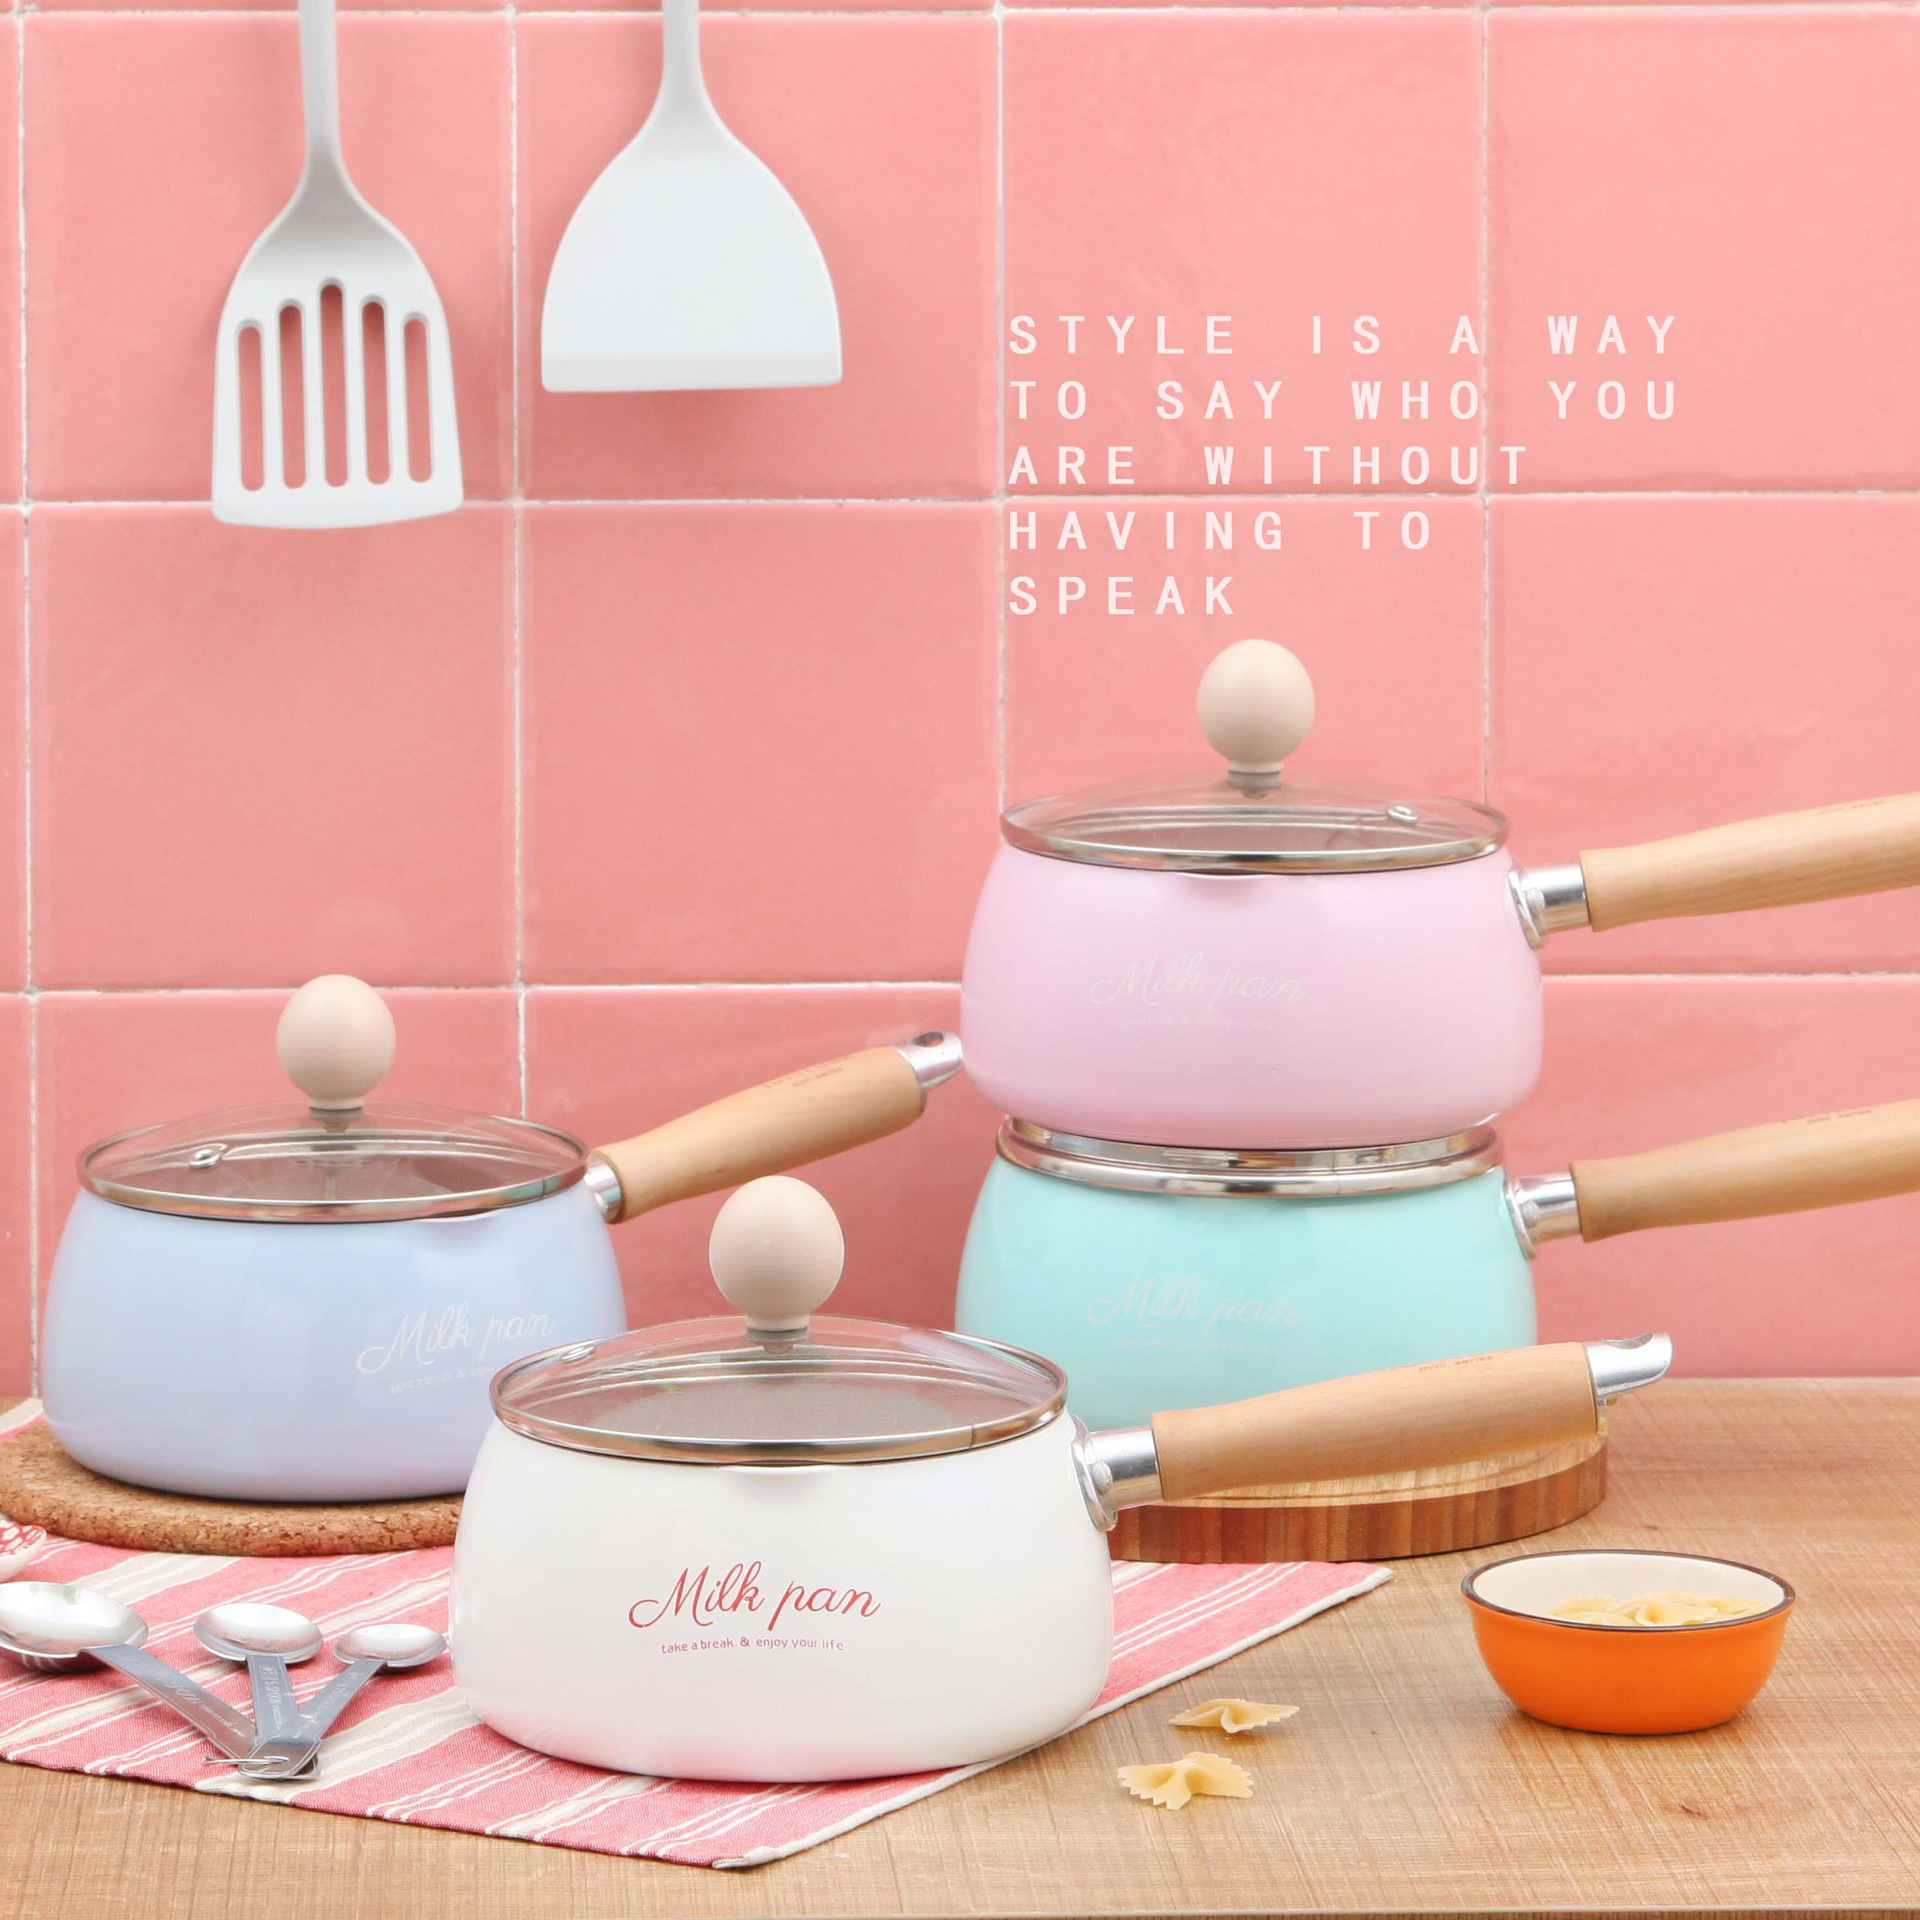 Kitchen Pot 16 CM Mini Milk Pans Christmas Gift Chocolate Milk Soup No-Stick Cooking Pot General Use For Gas & Induction Cooker